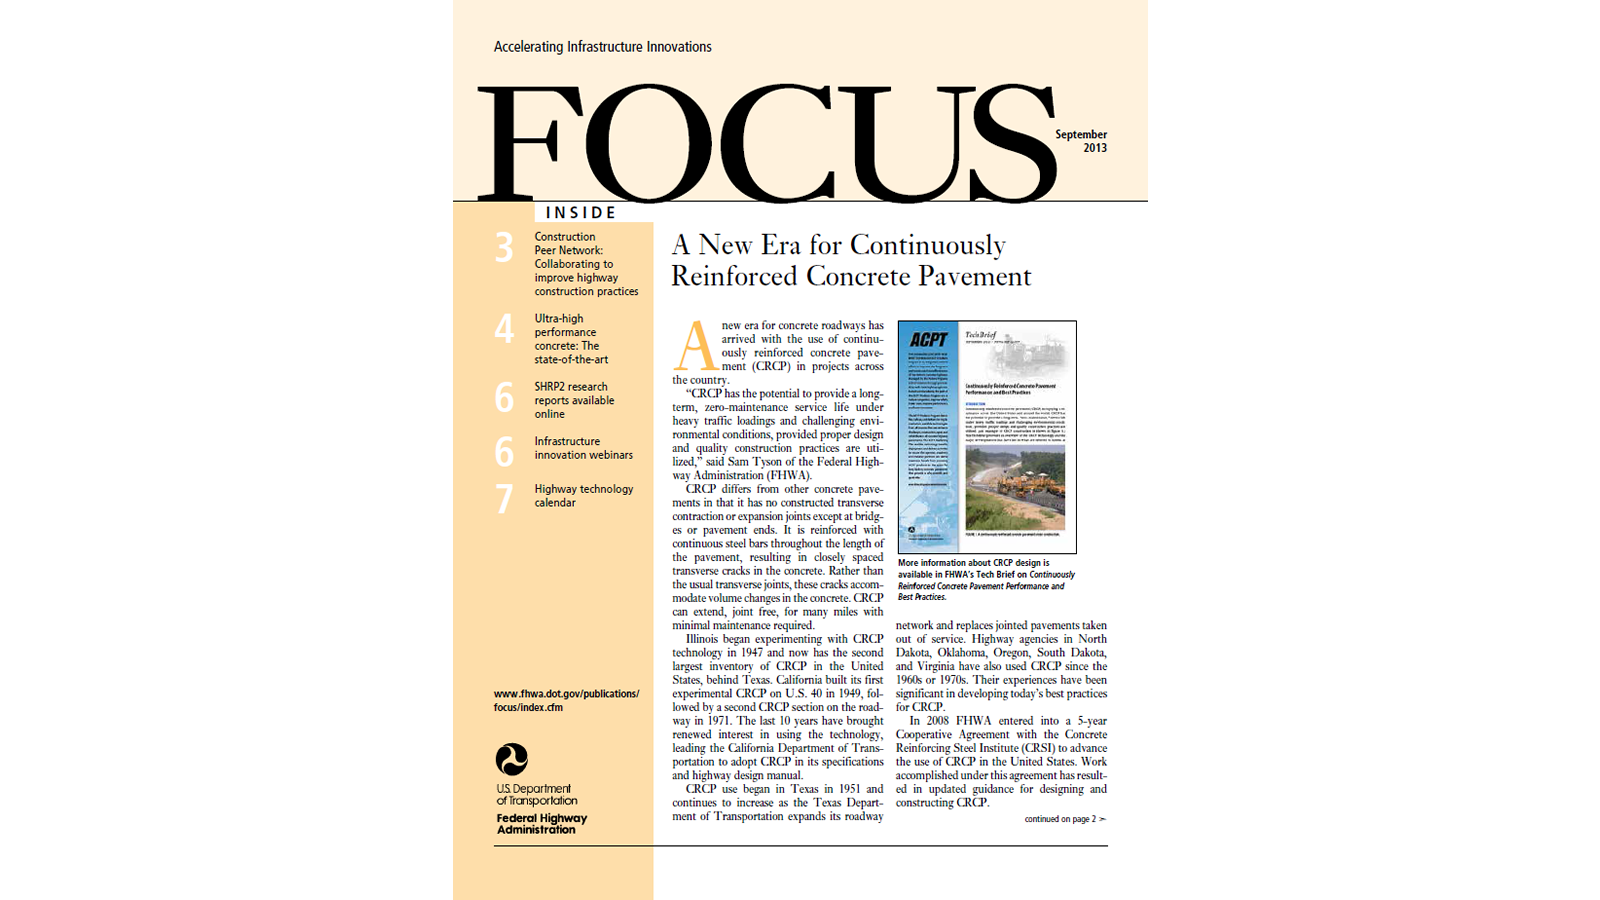 A New Era for Continuously Reinforced Concrete Pavement from September 2013 Issue of FHWA's FOCUS (FHWA-HRT-13-017)